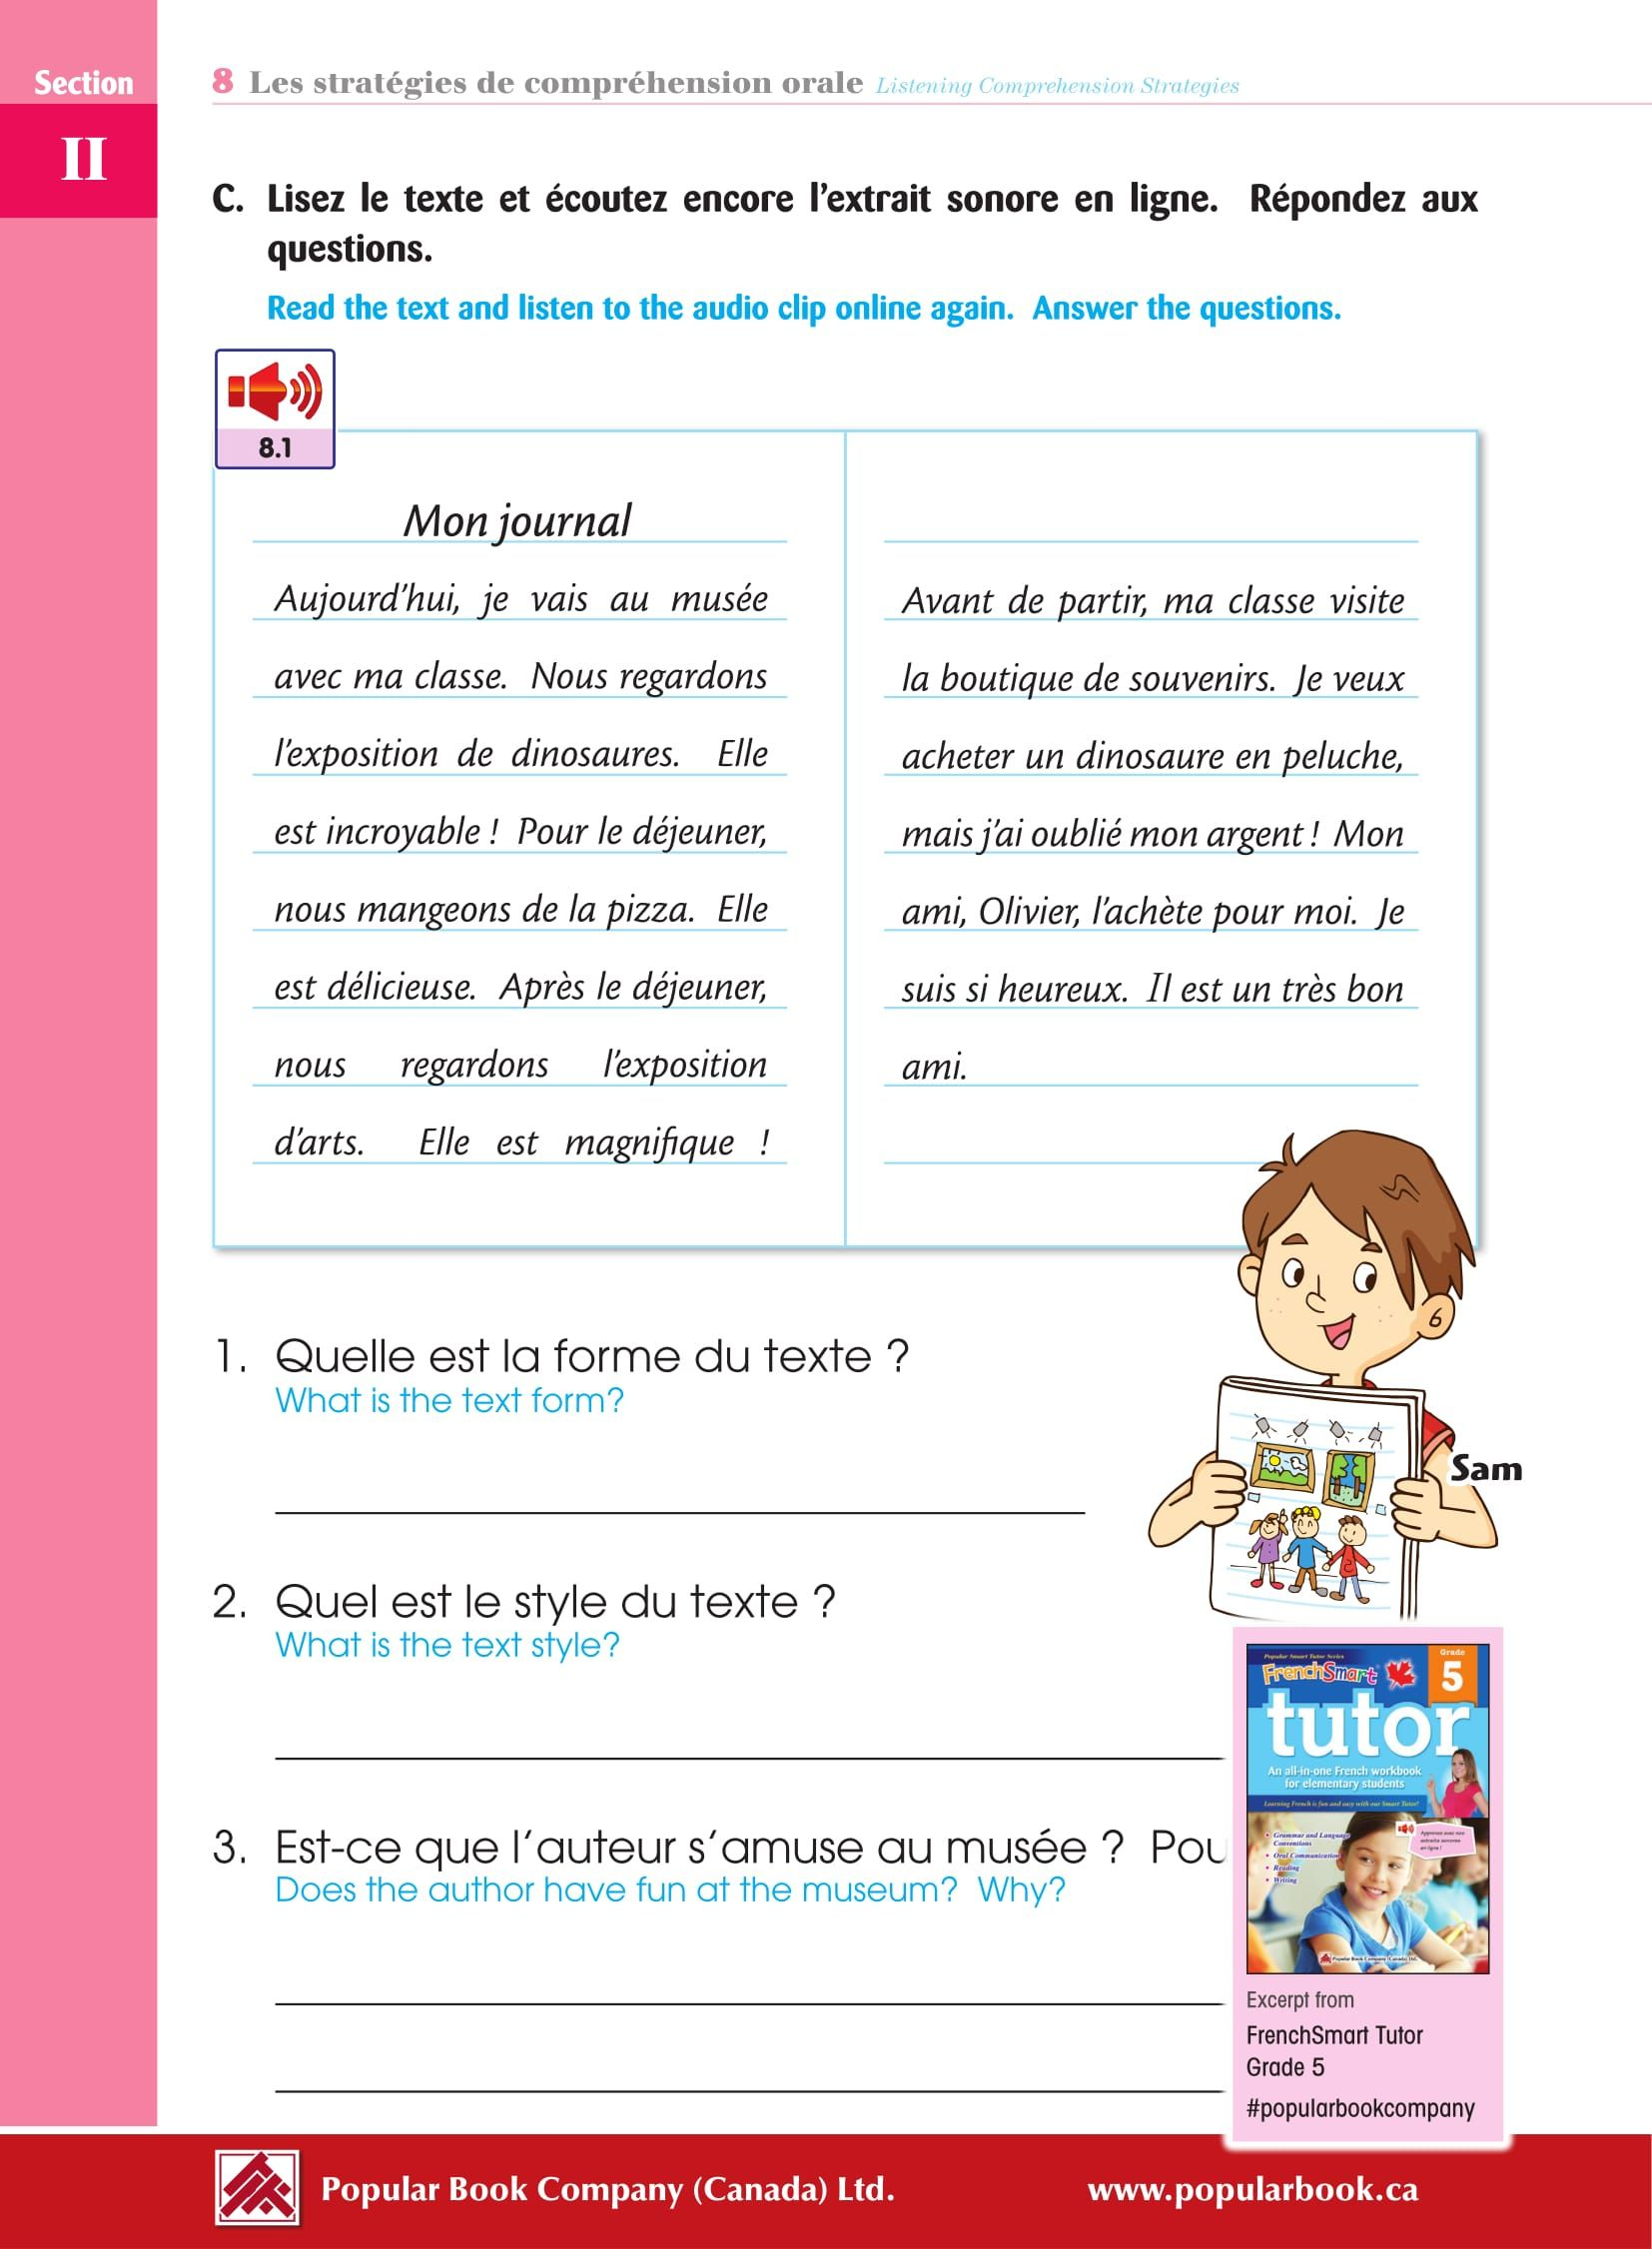 Download the free sample pages from FrenchSmart Tutor Grade 5 workbook.  #PopularBookCompany #FrenchSmartT…   Free worksheets for kids [ 2252 x 1654 Pixel ]